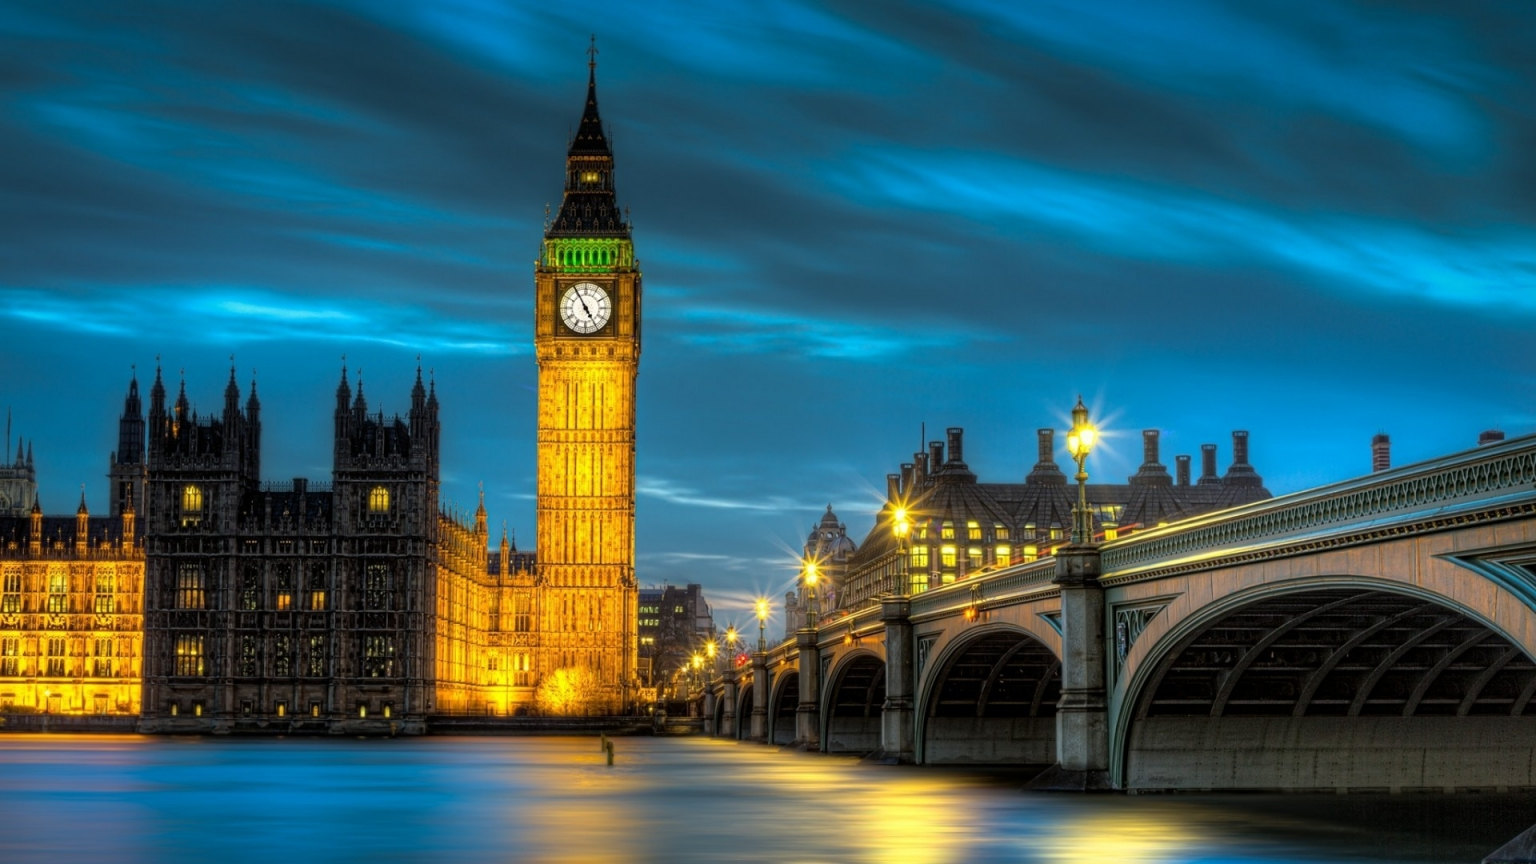 Amazing Palace of Westminster for 1536 x 864 HDTV resolution